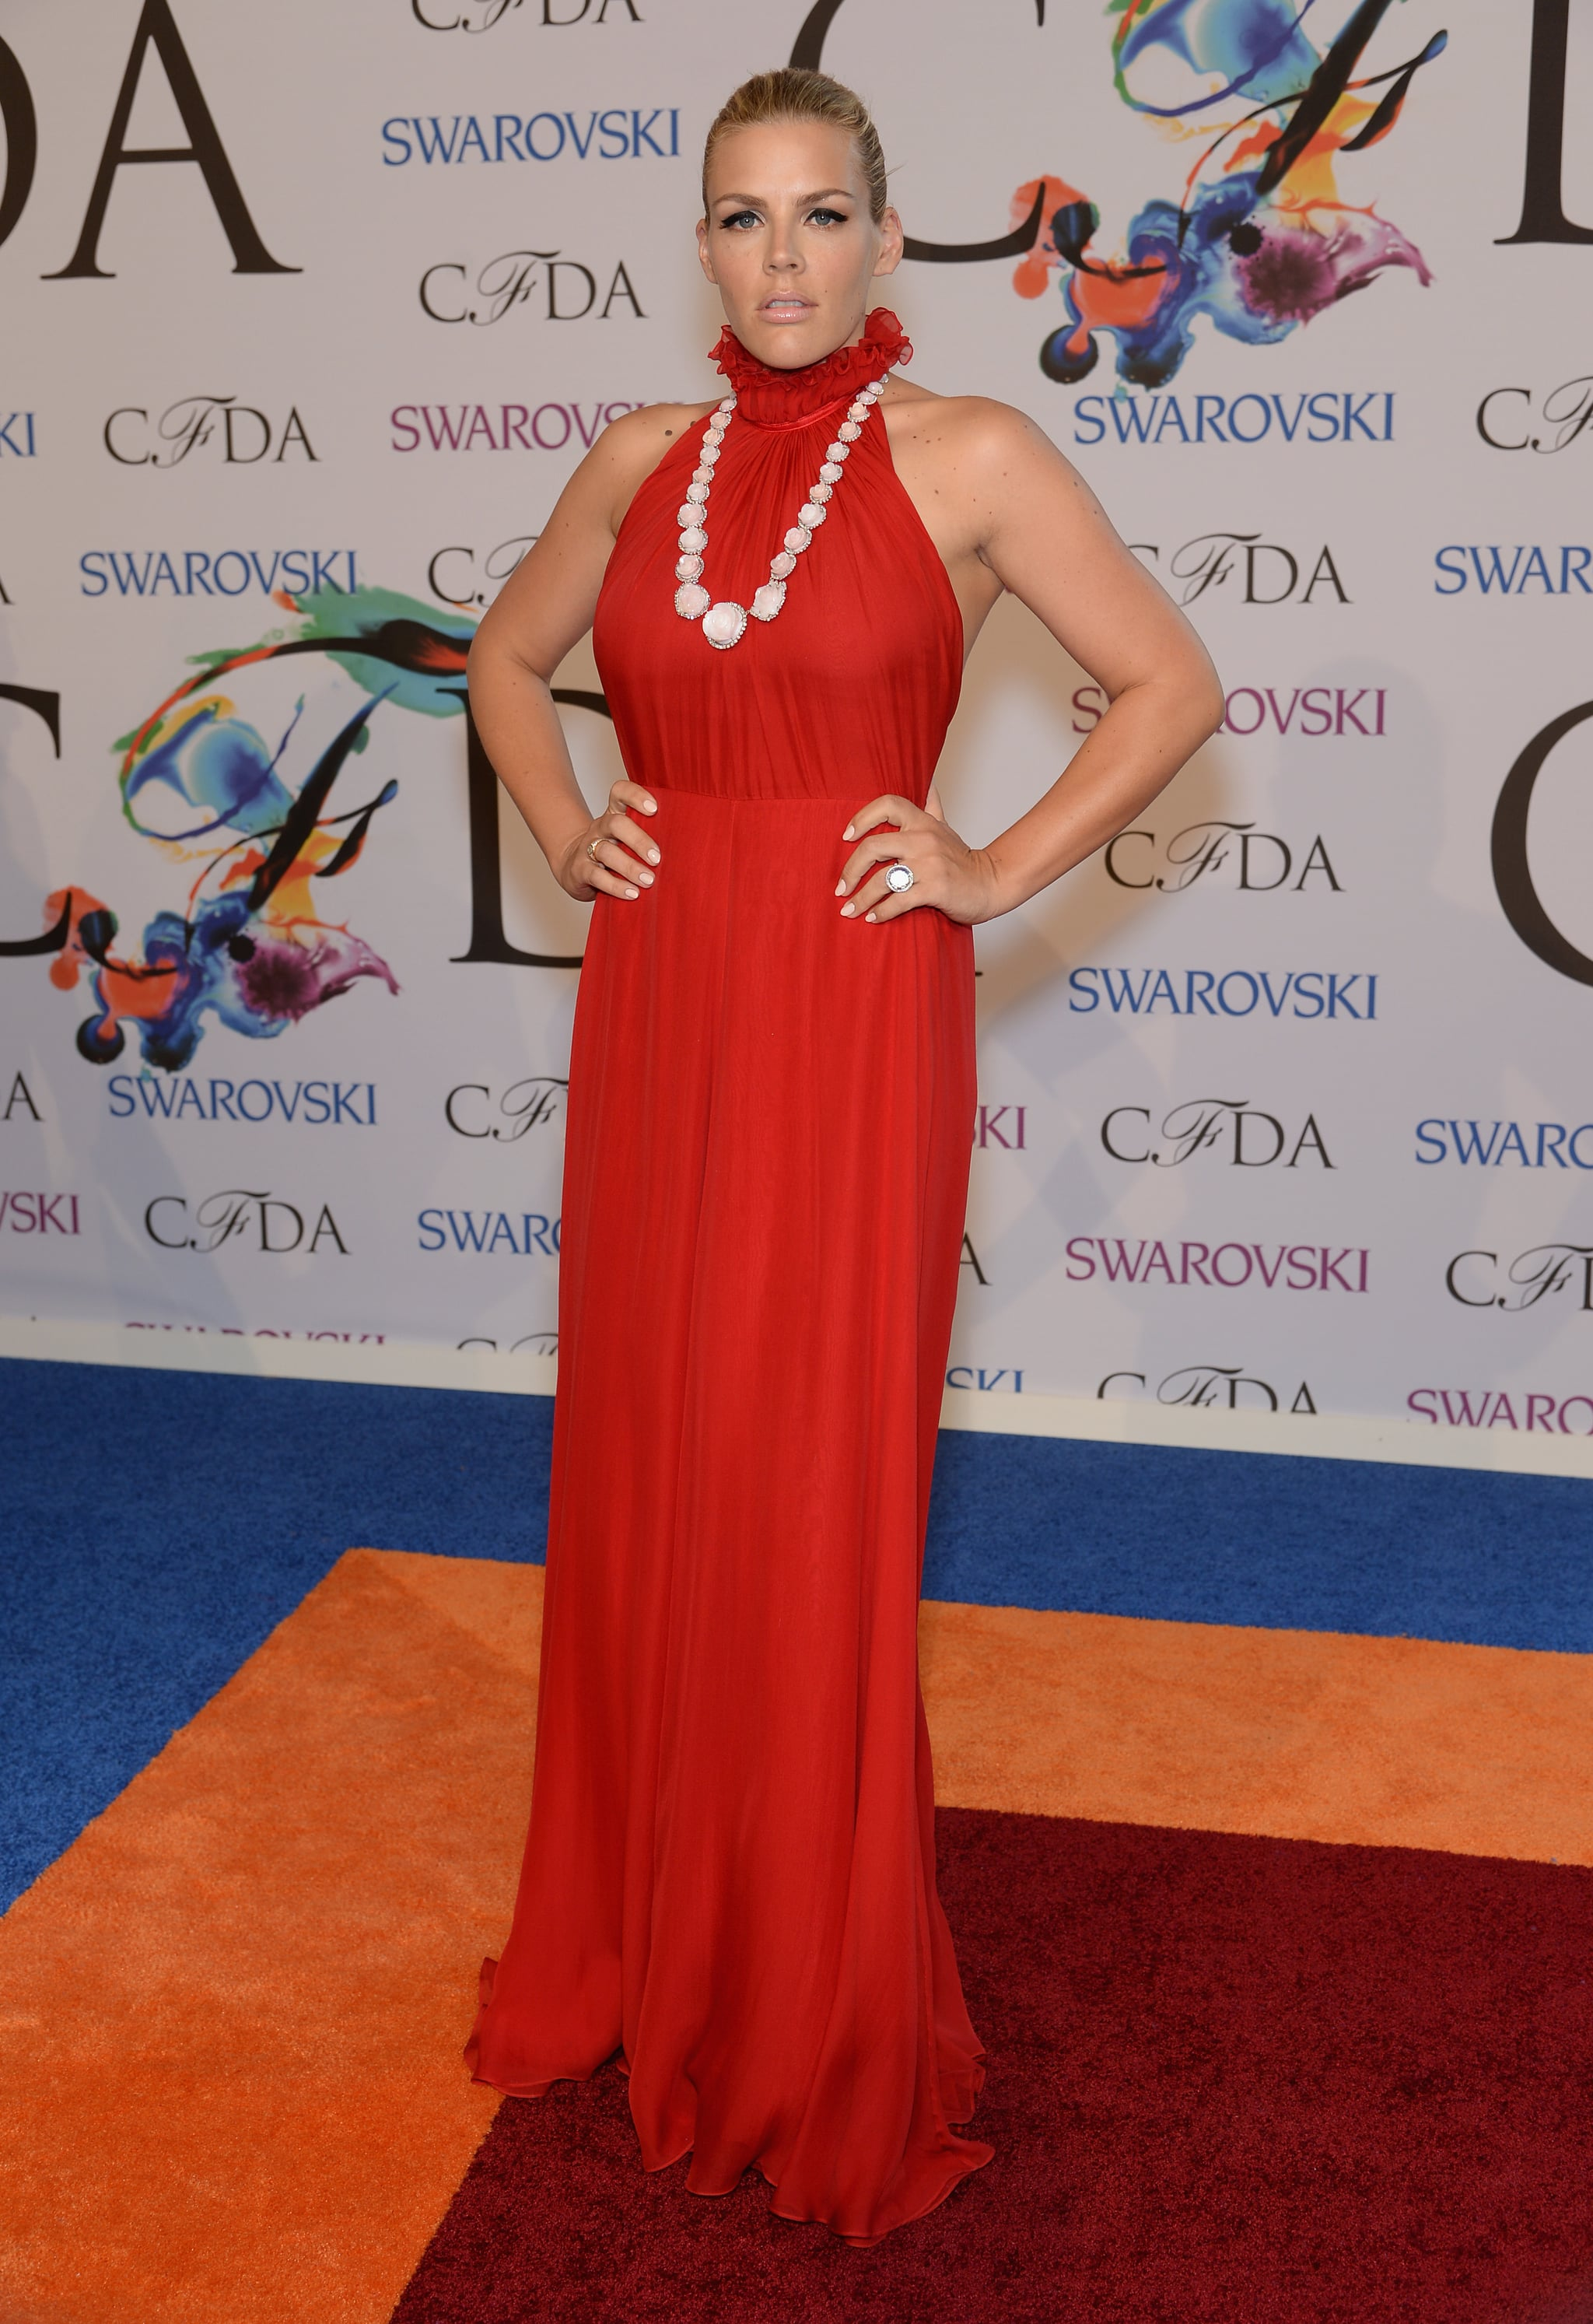 Busy Philipps attended the CFDA Awards in a bright dress and beads.